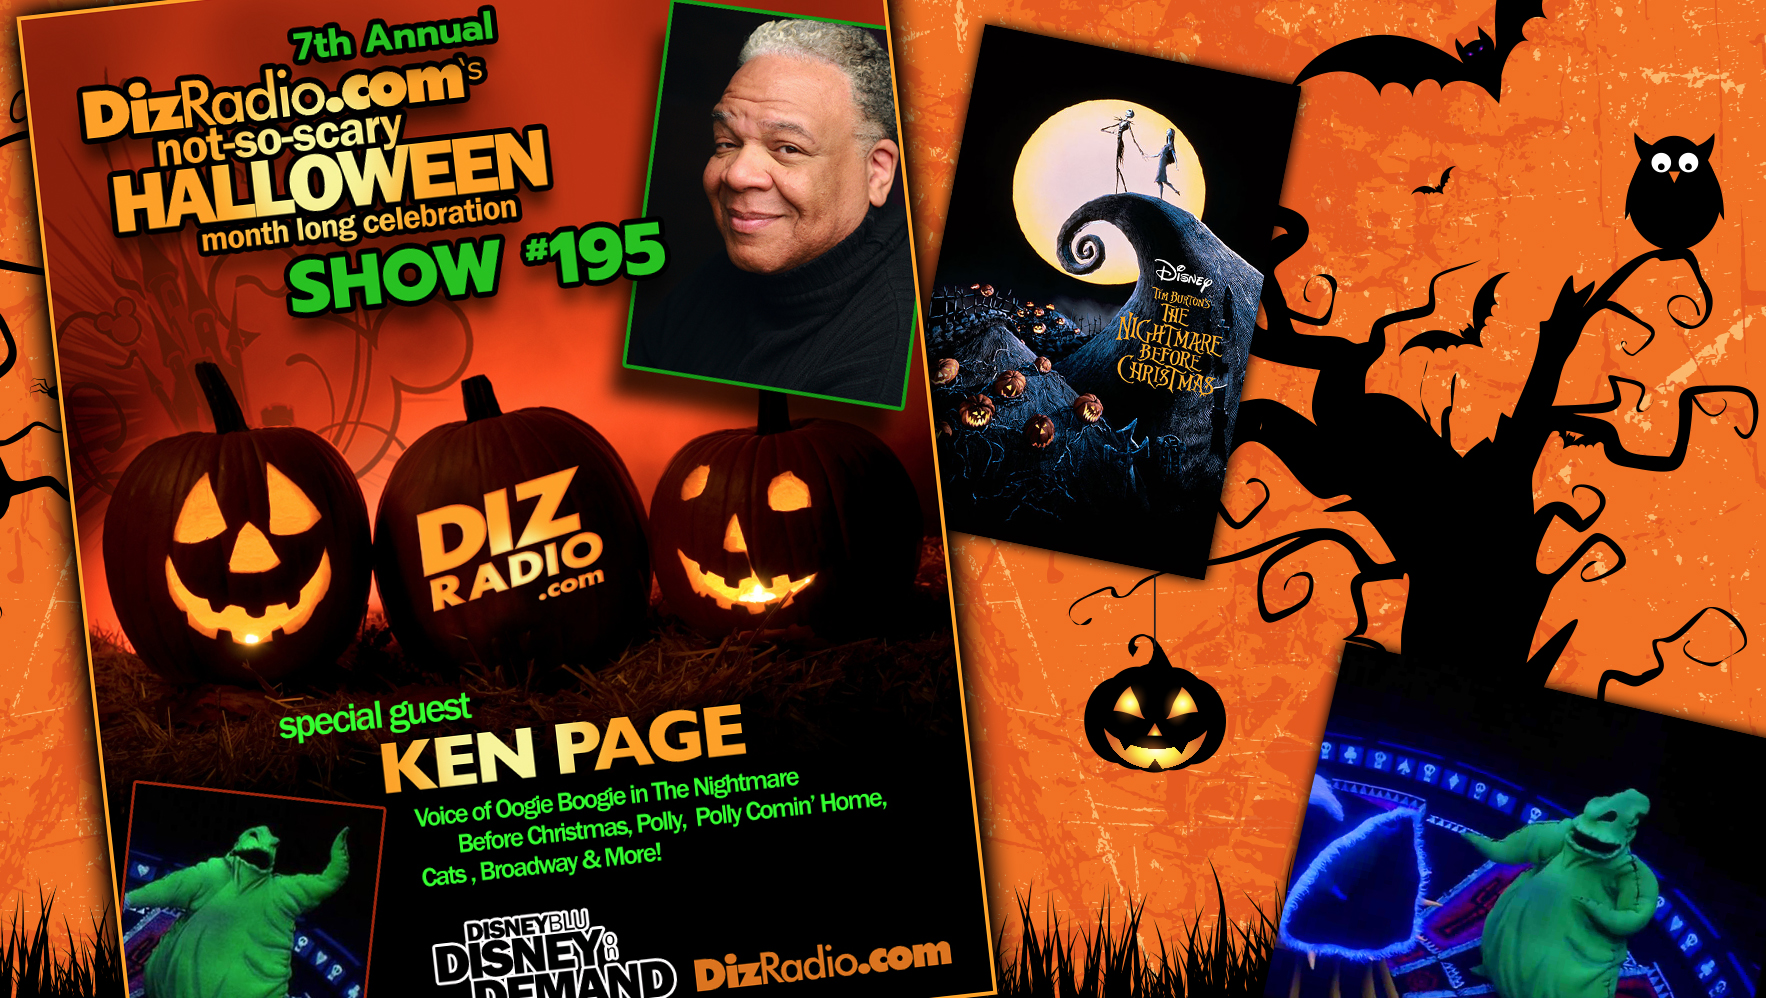 DisneyBlu's DizRadio Disney on Demand Podcast Show #195 w/ Special Guest KEN PAGE (Voice of Oogie Boogie in The Nightmare Before Christmas, Cats, Polly, Polly Comin' Home)